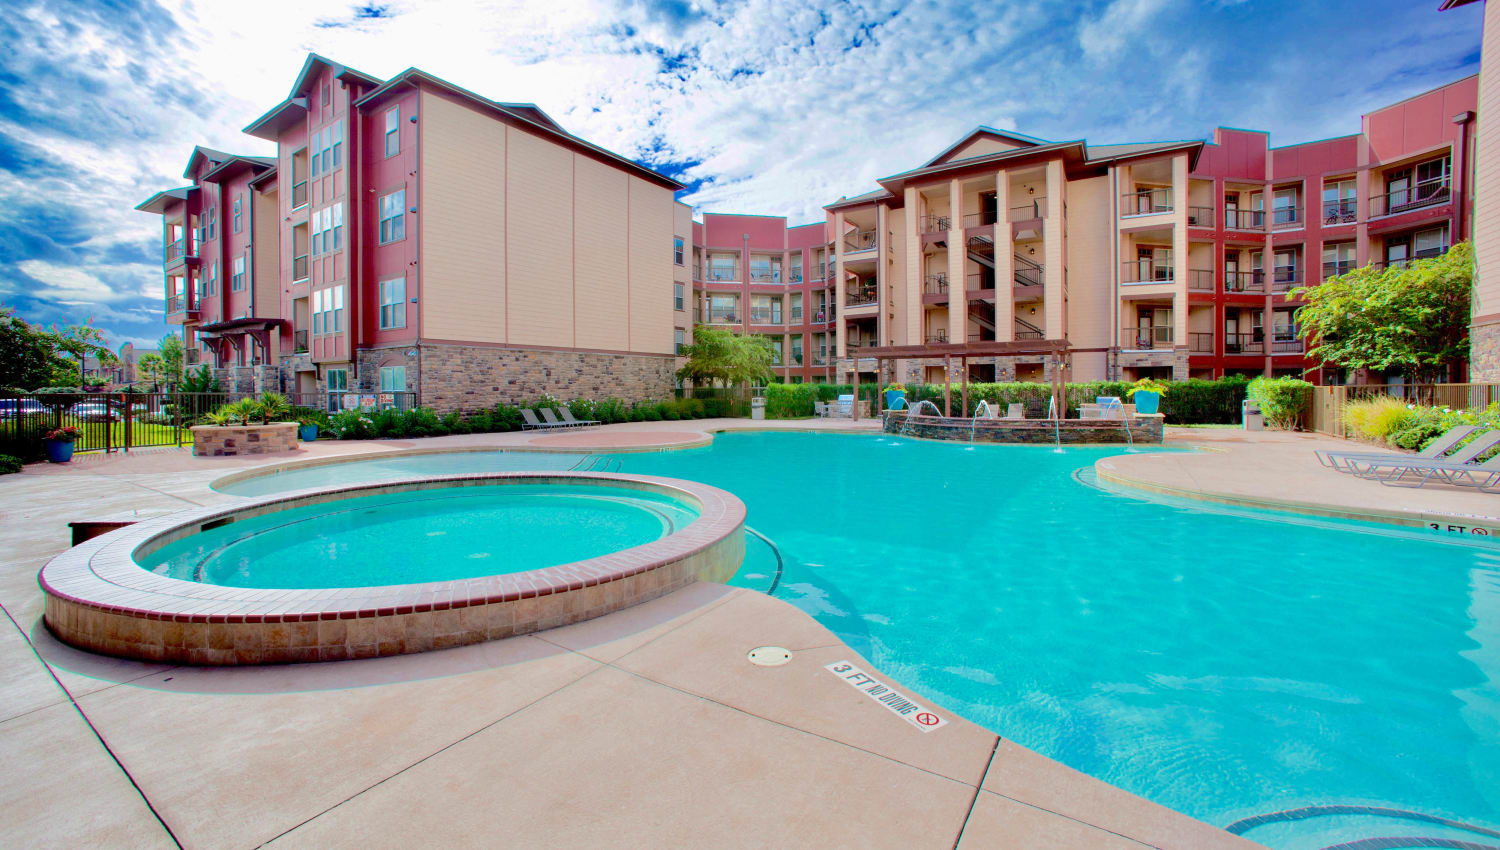 Swimming pool and spa area on a sunny afternoon at Olympus Katy Ranch in Katy, Texas